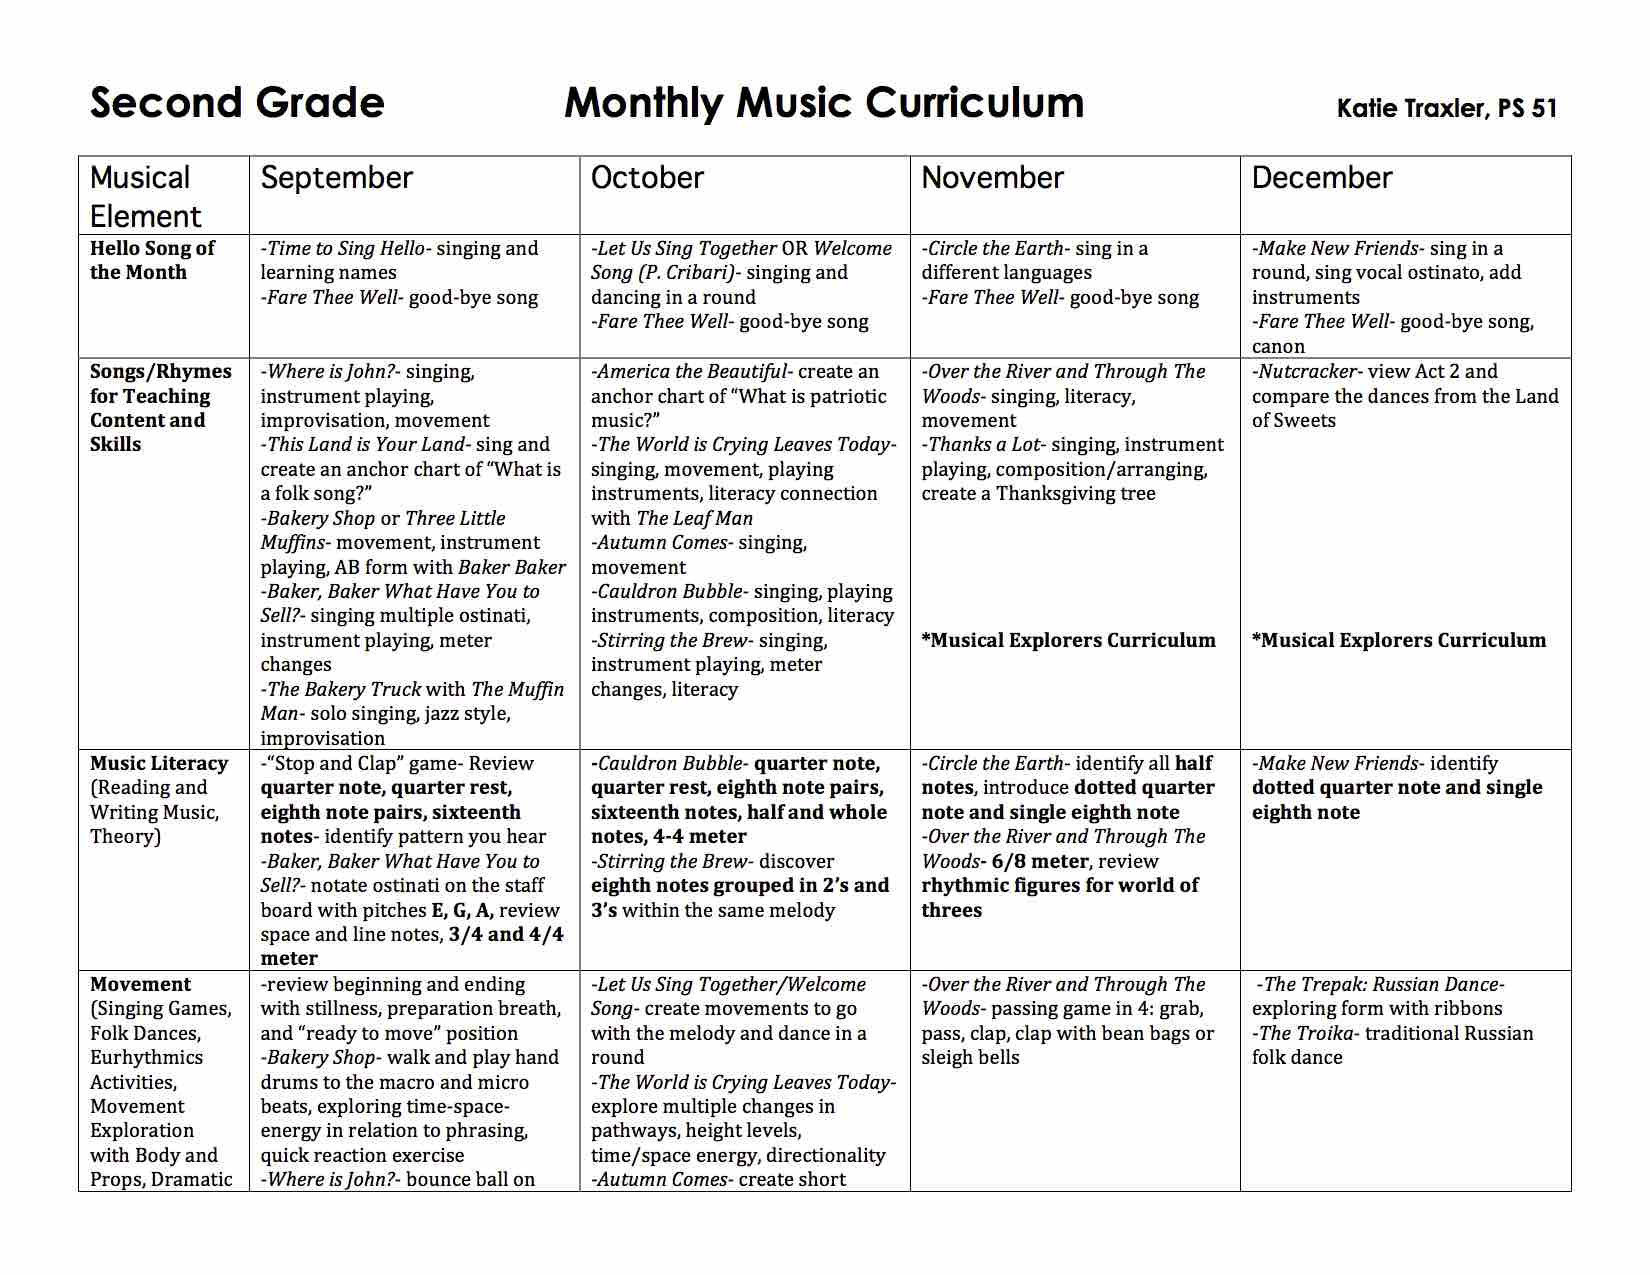 Second Grade Music Curriculum Maps